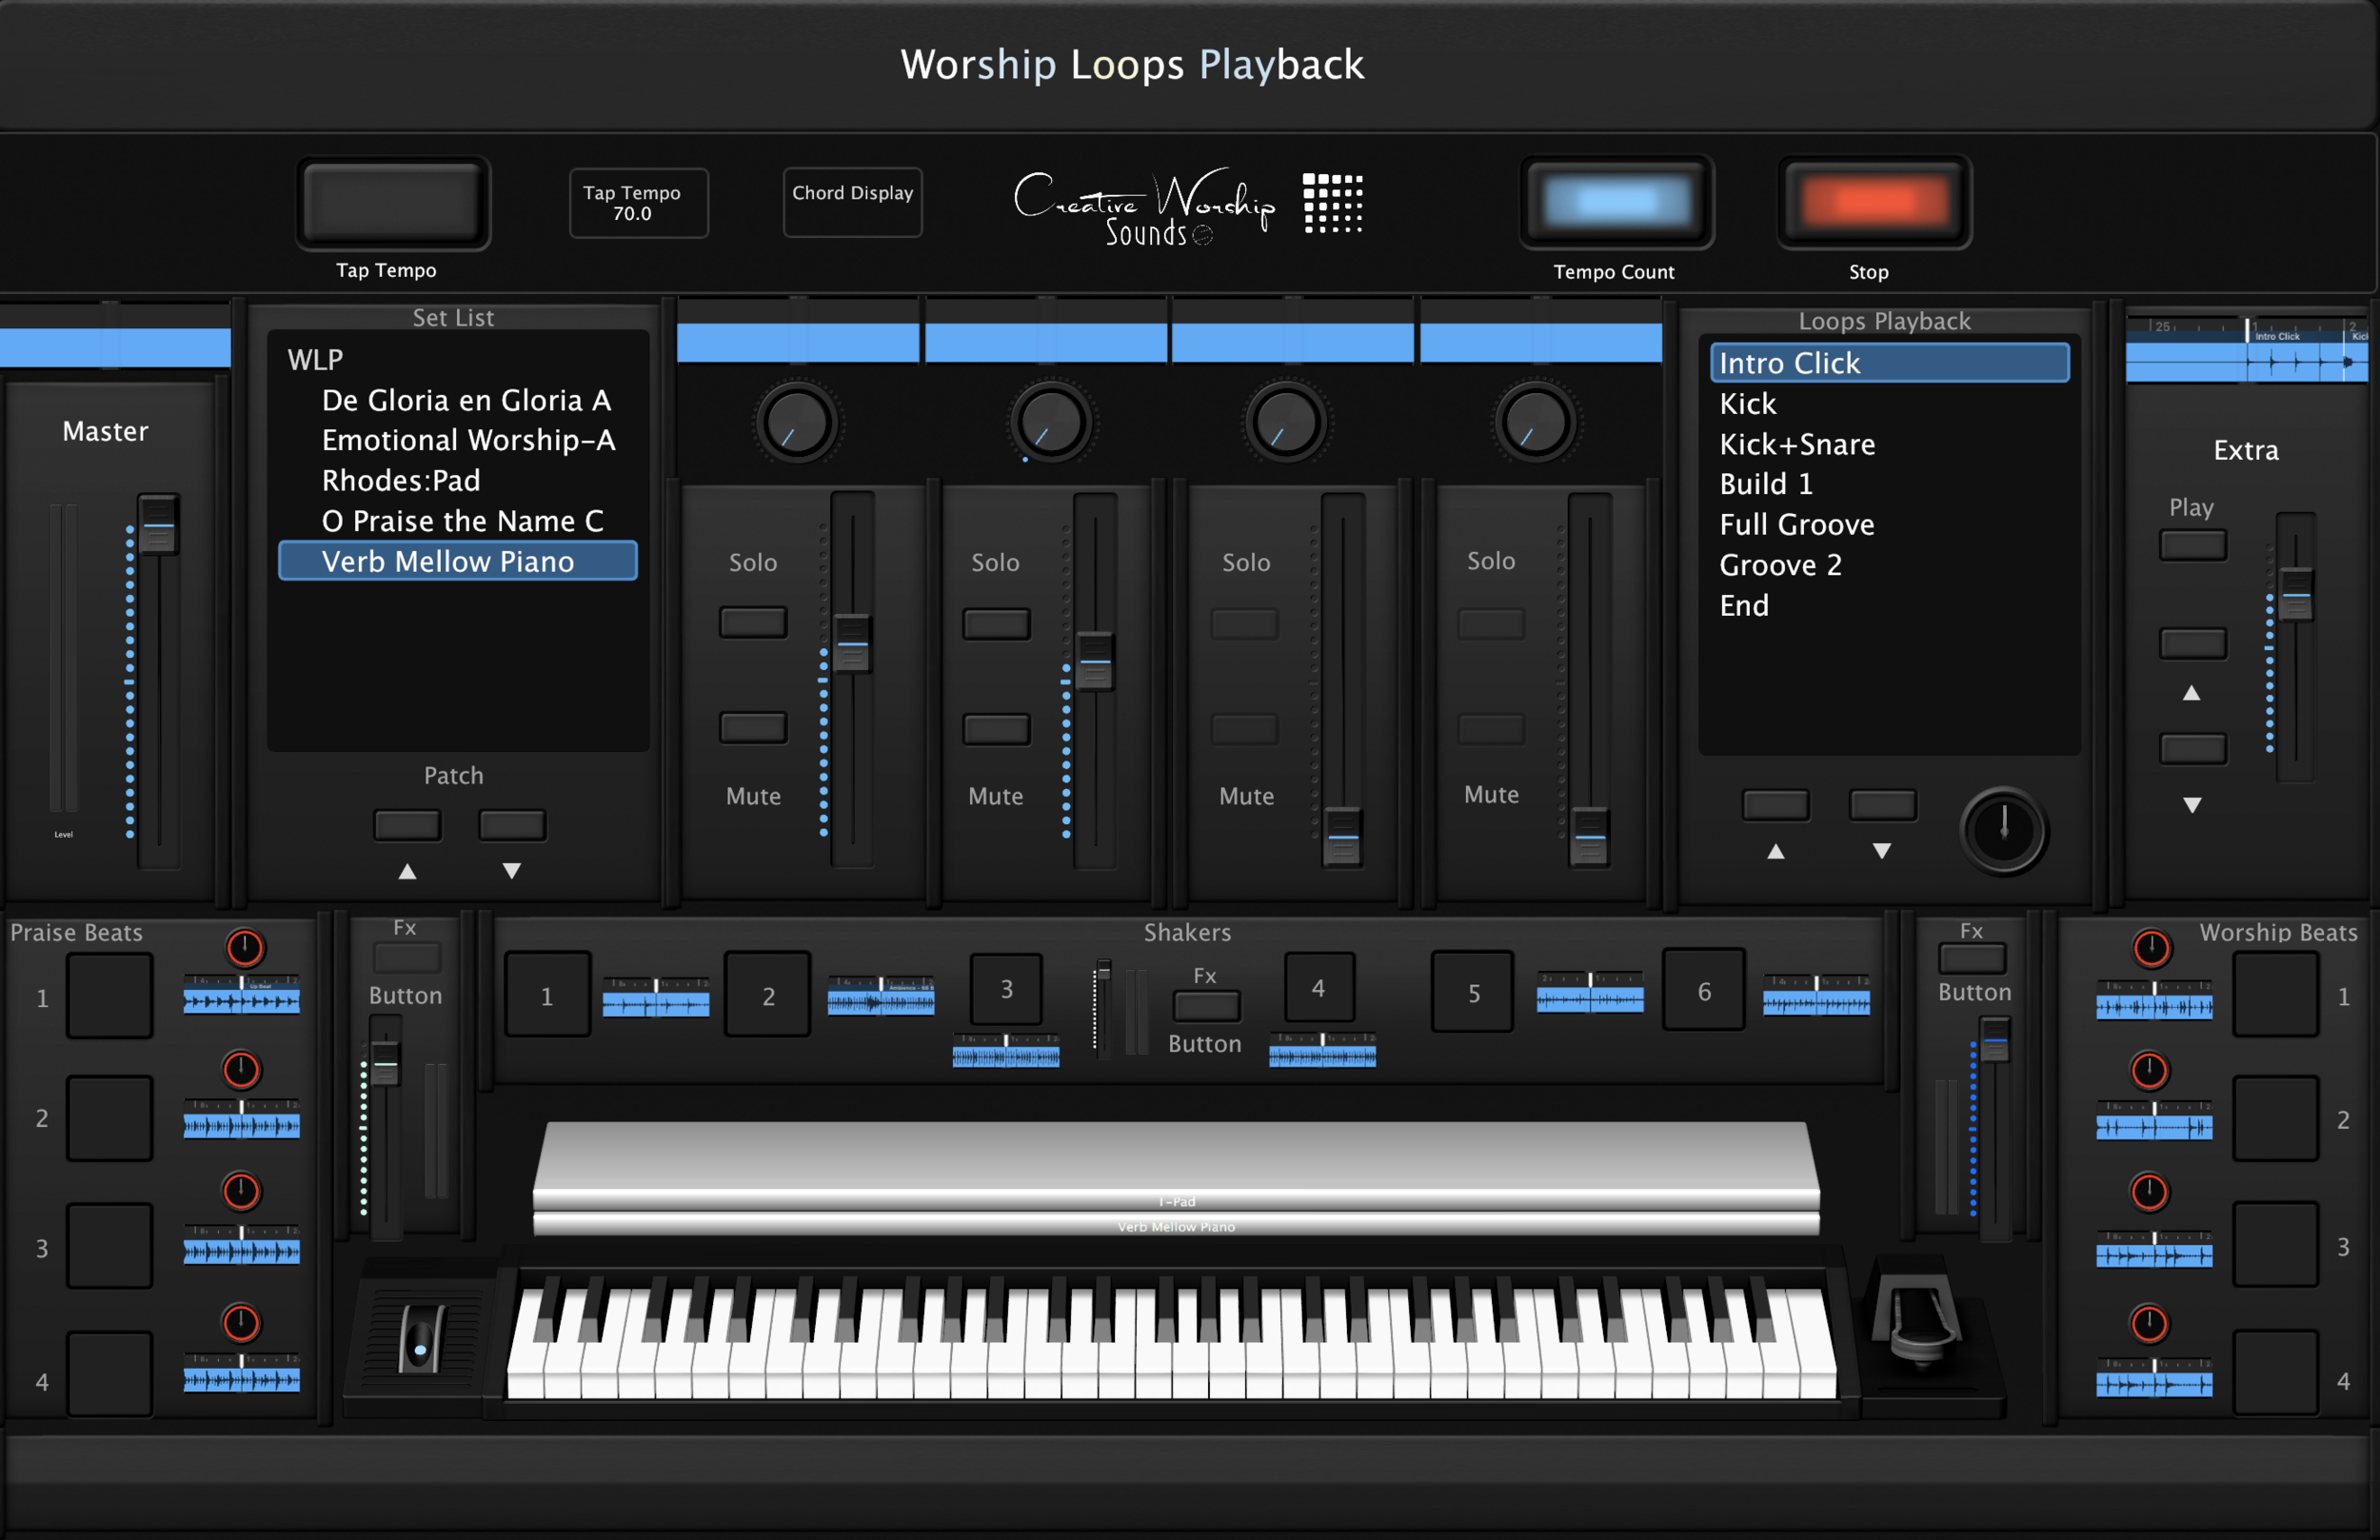 Worship Loops Playback-The Best Mainstage 3 Concert that implements Loops playback in real time.